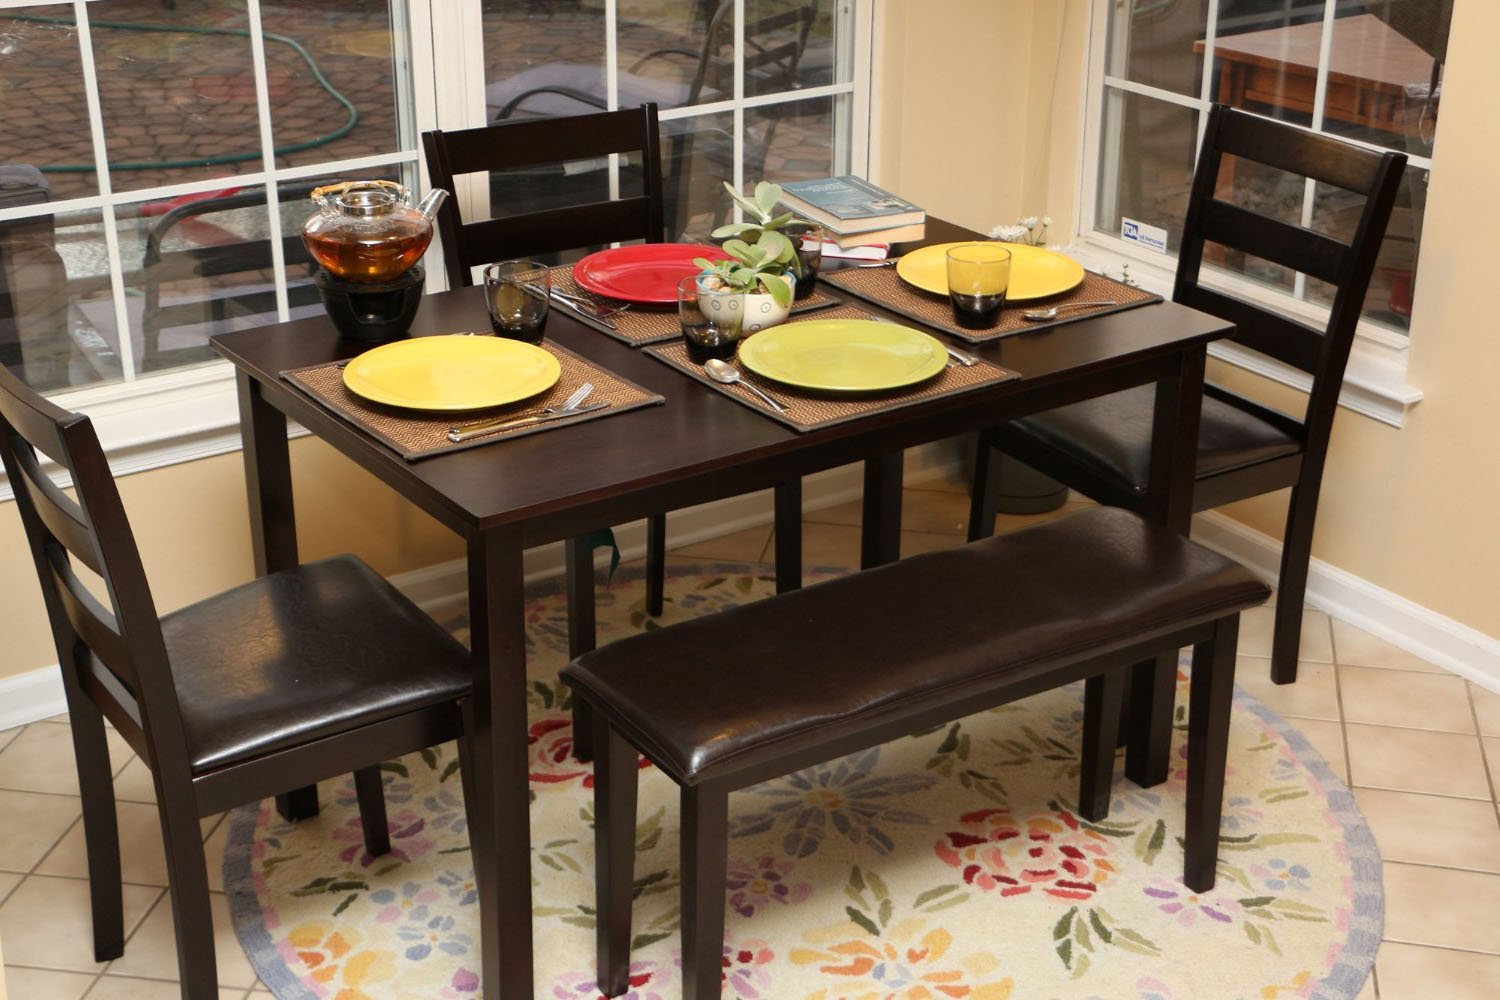 amazoncom 5pc dining dinette table chairs bench set espresso brown 150232b table chair sets - Dining Room Table With Chairs And Bench